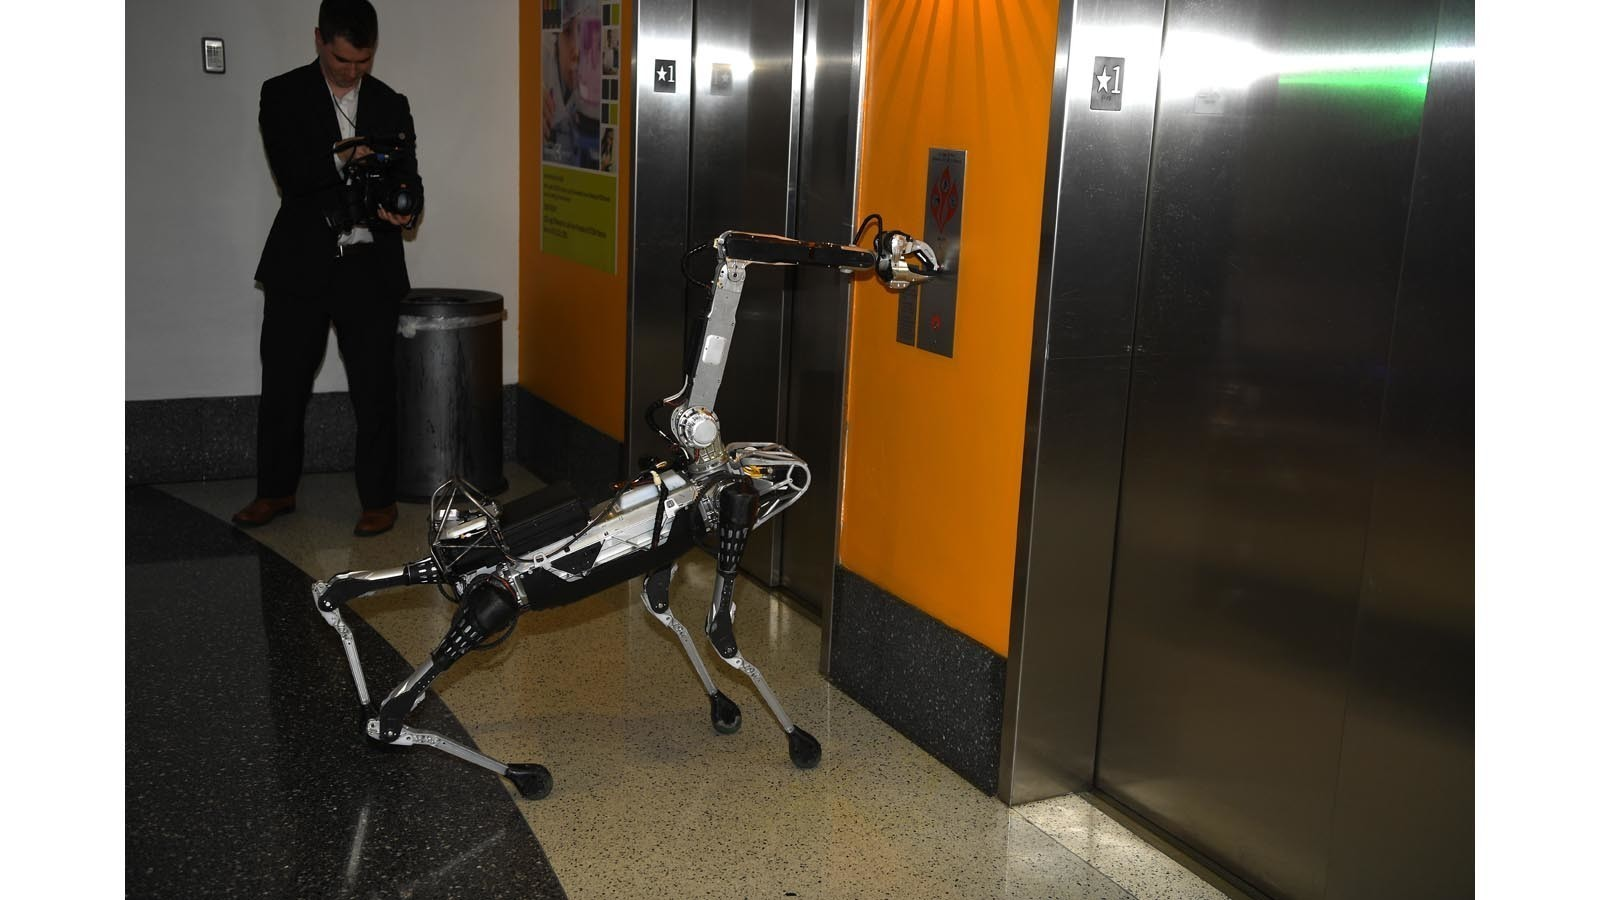 Why Google wanted to sell — and Softbank wanted to buy — Boston Dynamics, which makes crazy robots